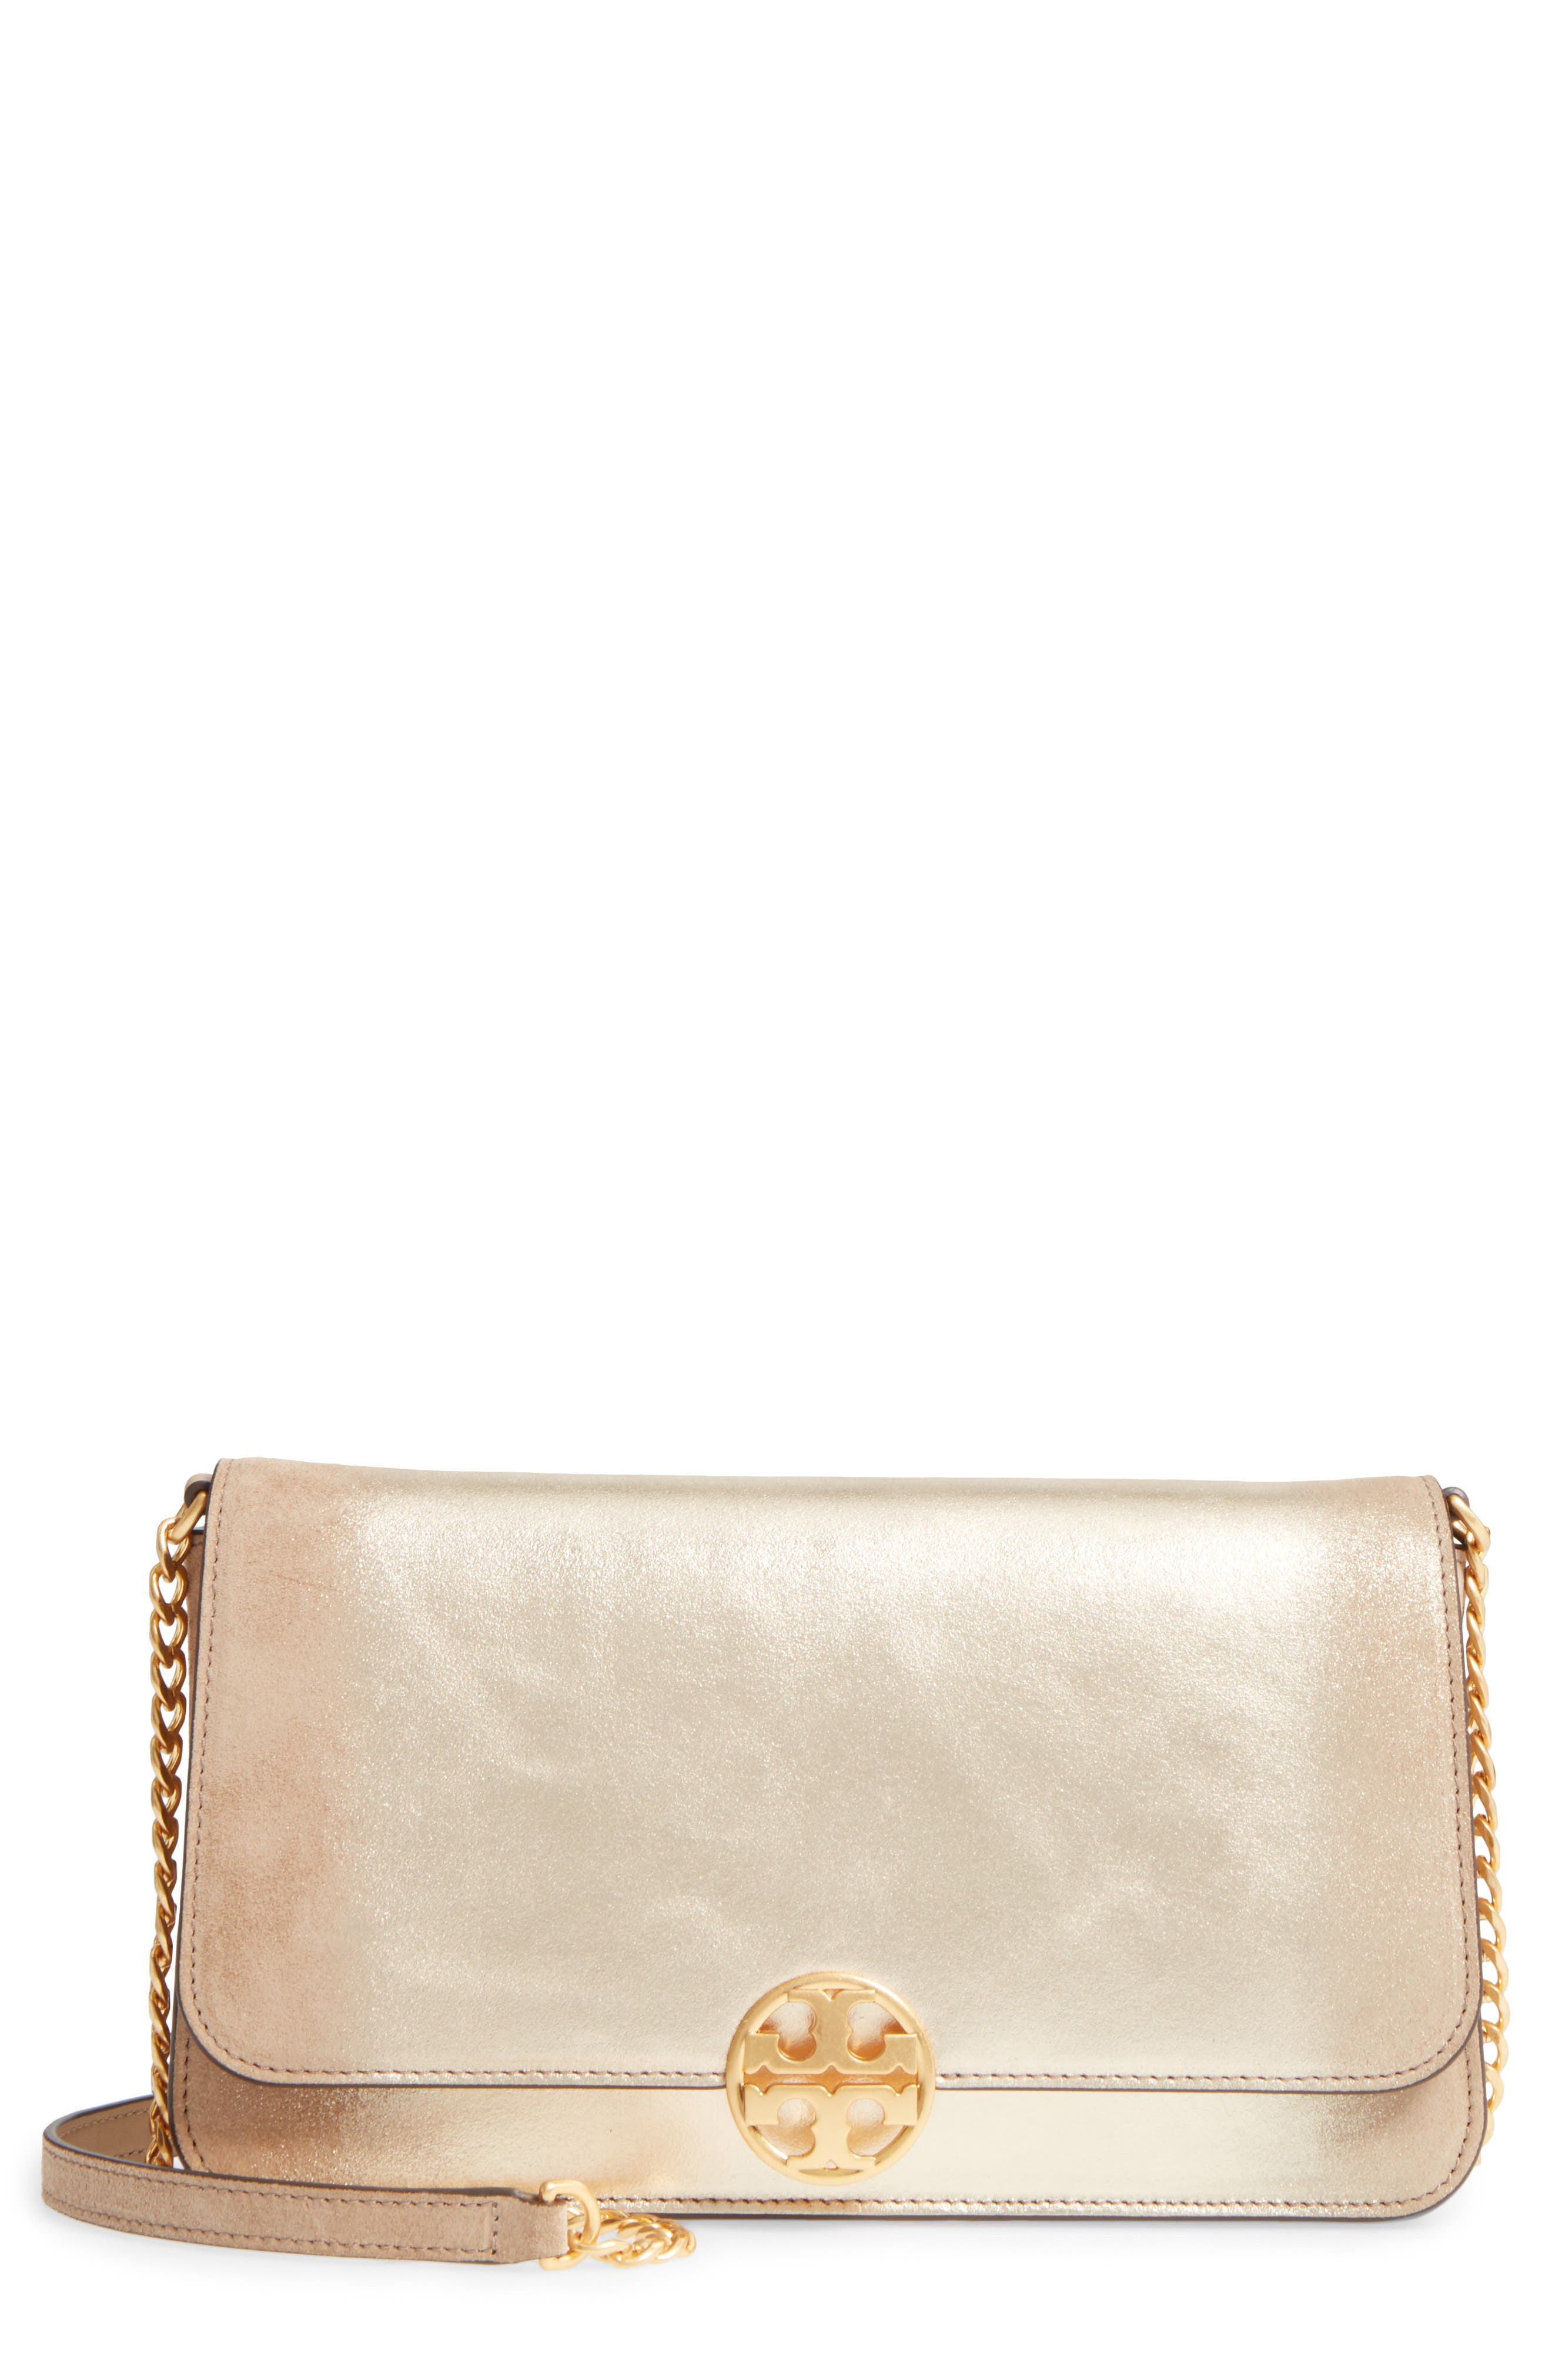 Alternate Image 1 Selected - Tory Burch Chelsea Convertible Metallic Leather Clutch